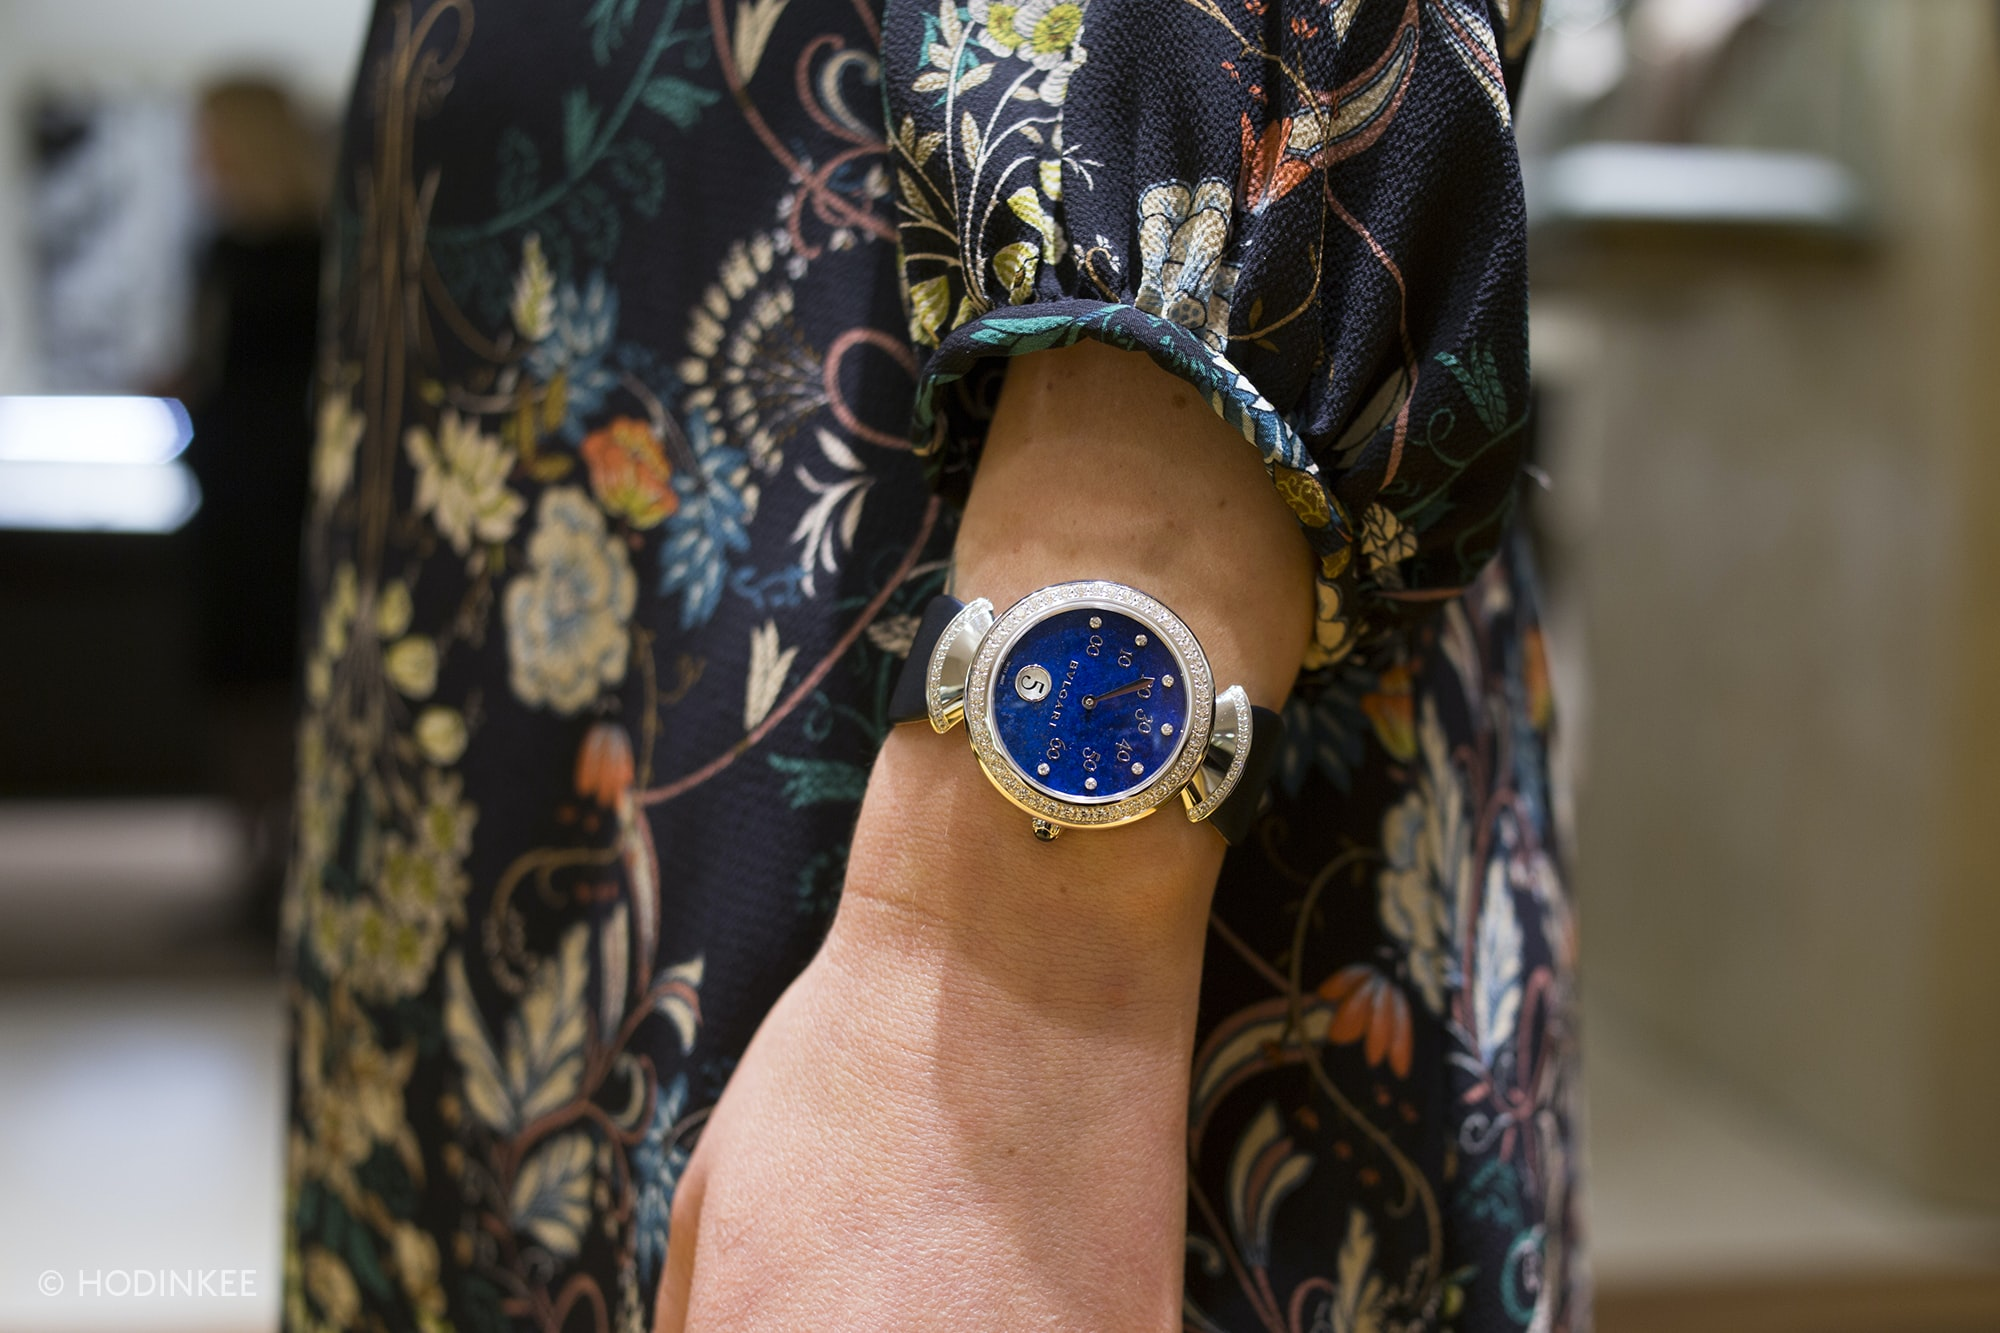 Photo Report: The Bulgari x HODINKEE Celebration Of The Octo Finissimo Minute Repeater In New York City Photo Report: The Bulgari x HODINKEE Celebration Of The Octo Finissimo Minute Repeater In New York City 20010101 copy